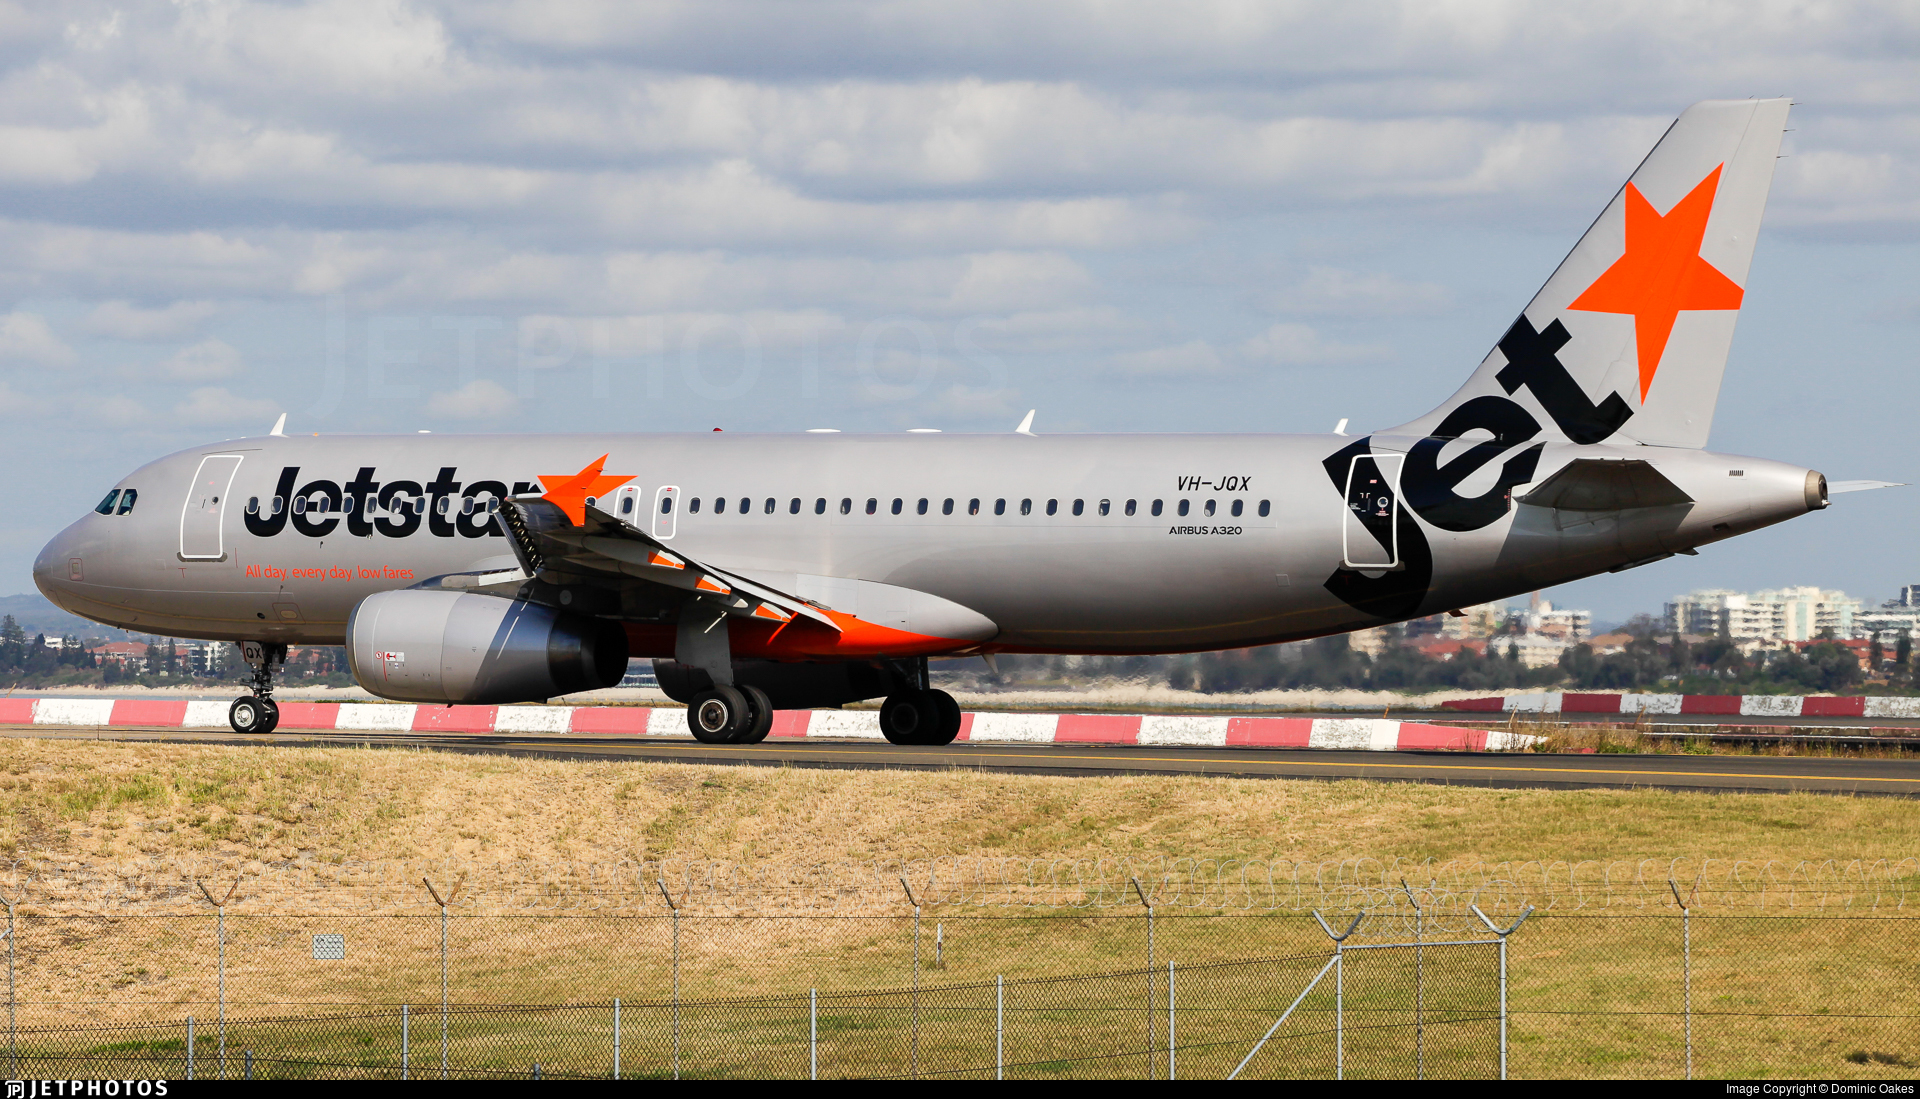 VH-JQX - Airbus A320-232 - Jetstar Airways